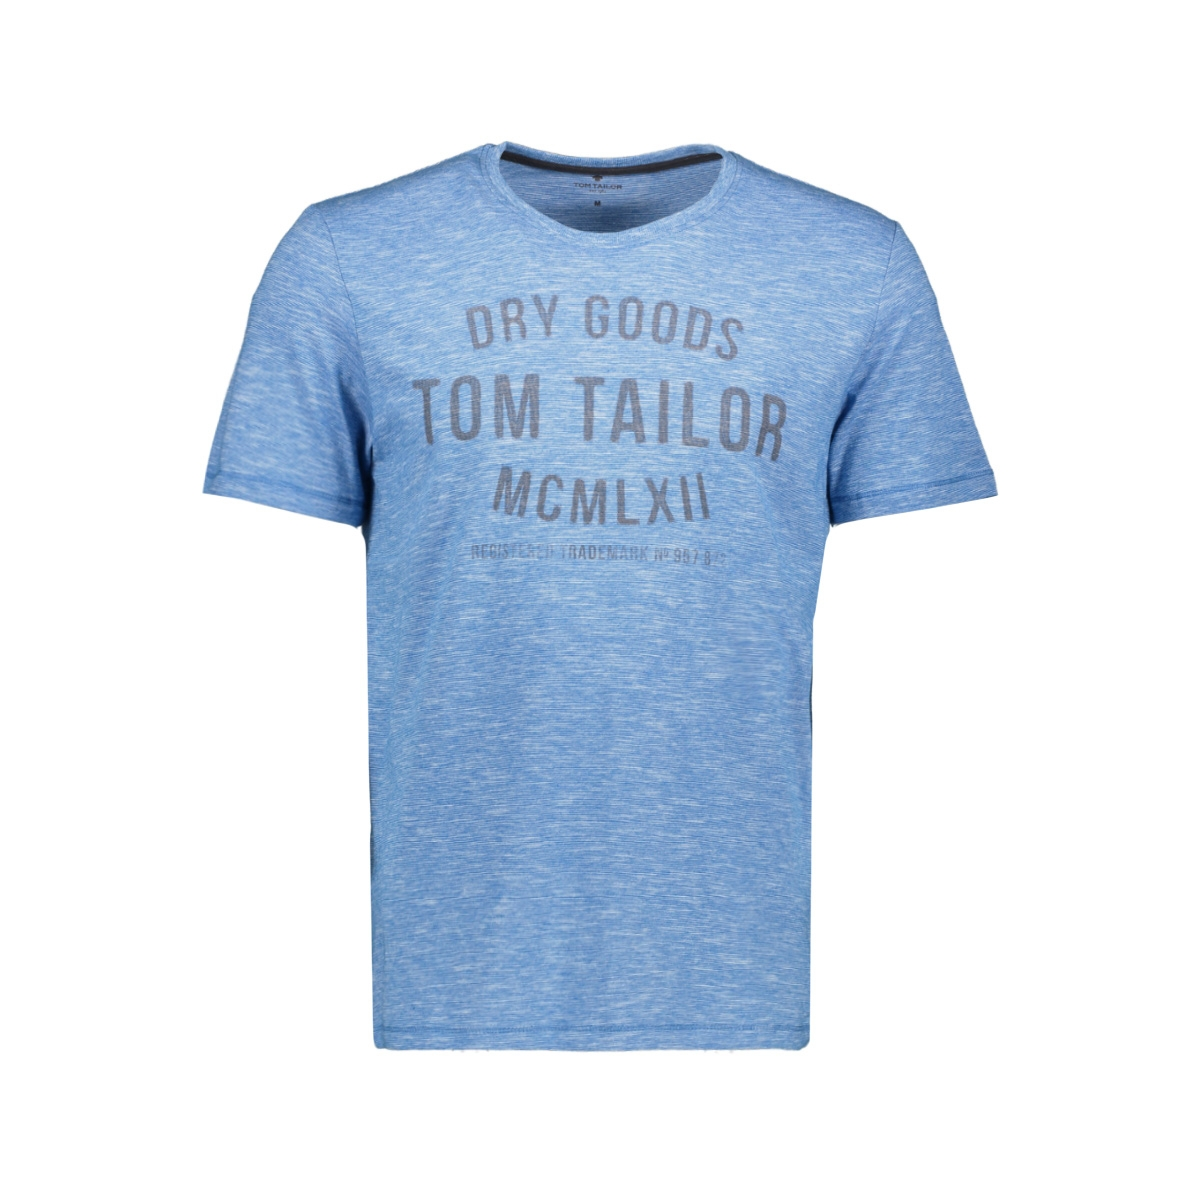 t shirt met print 1008640xx10 tom tailor t-shirt 19496